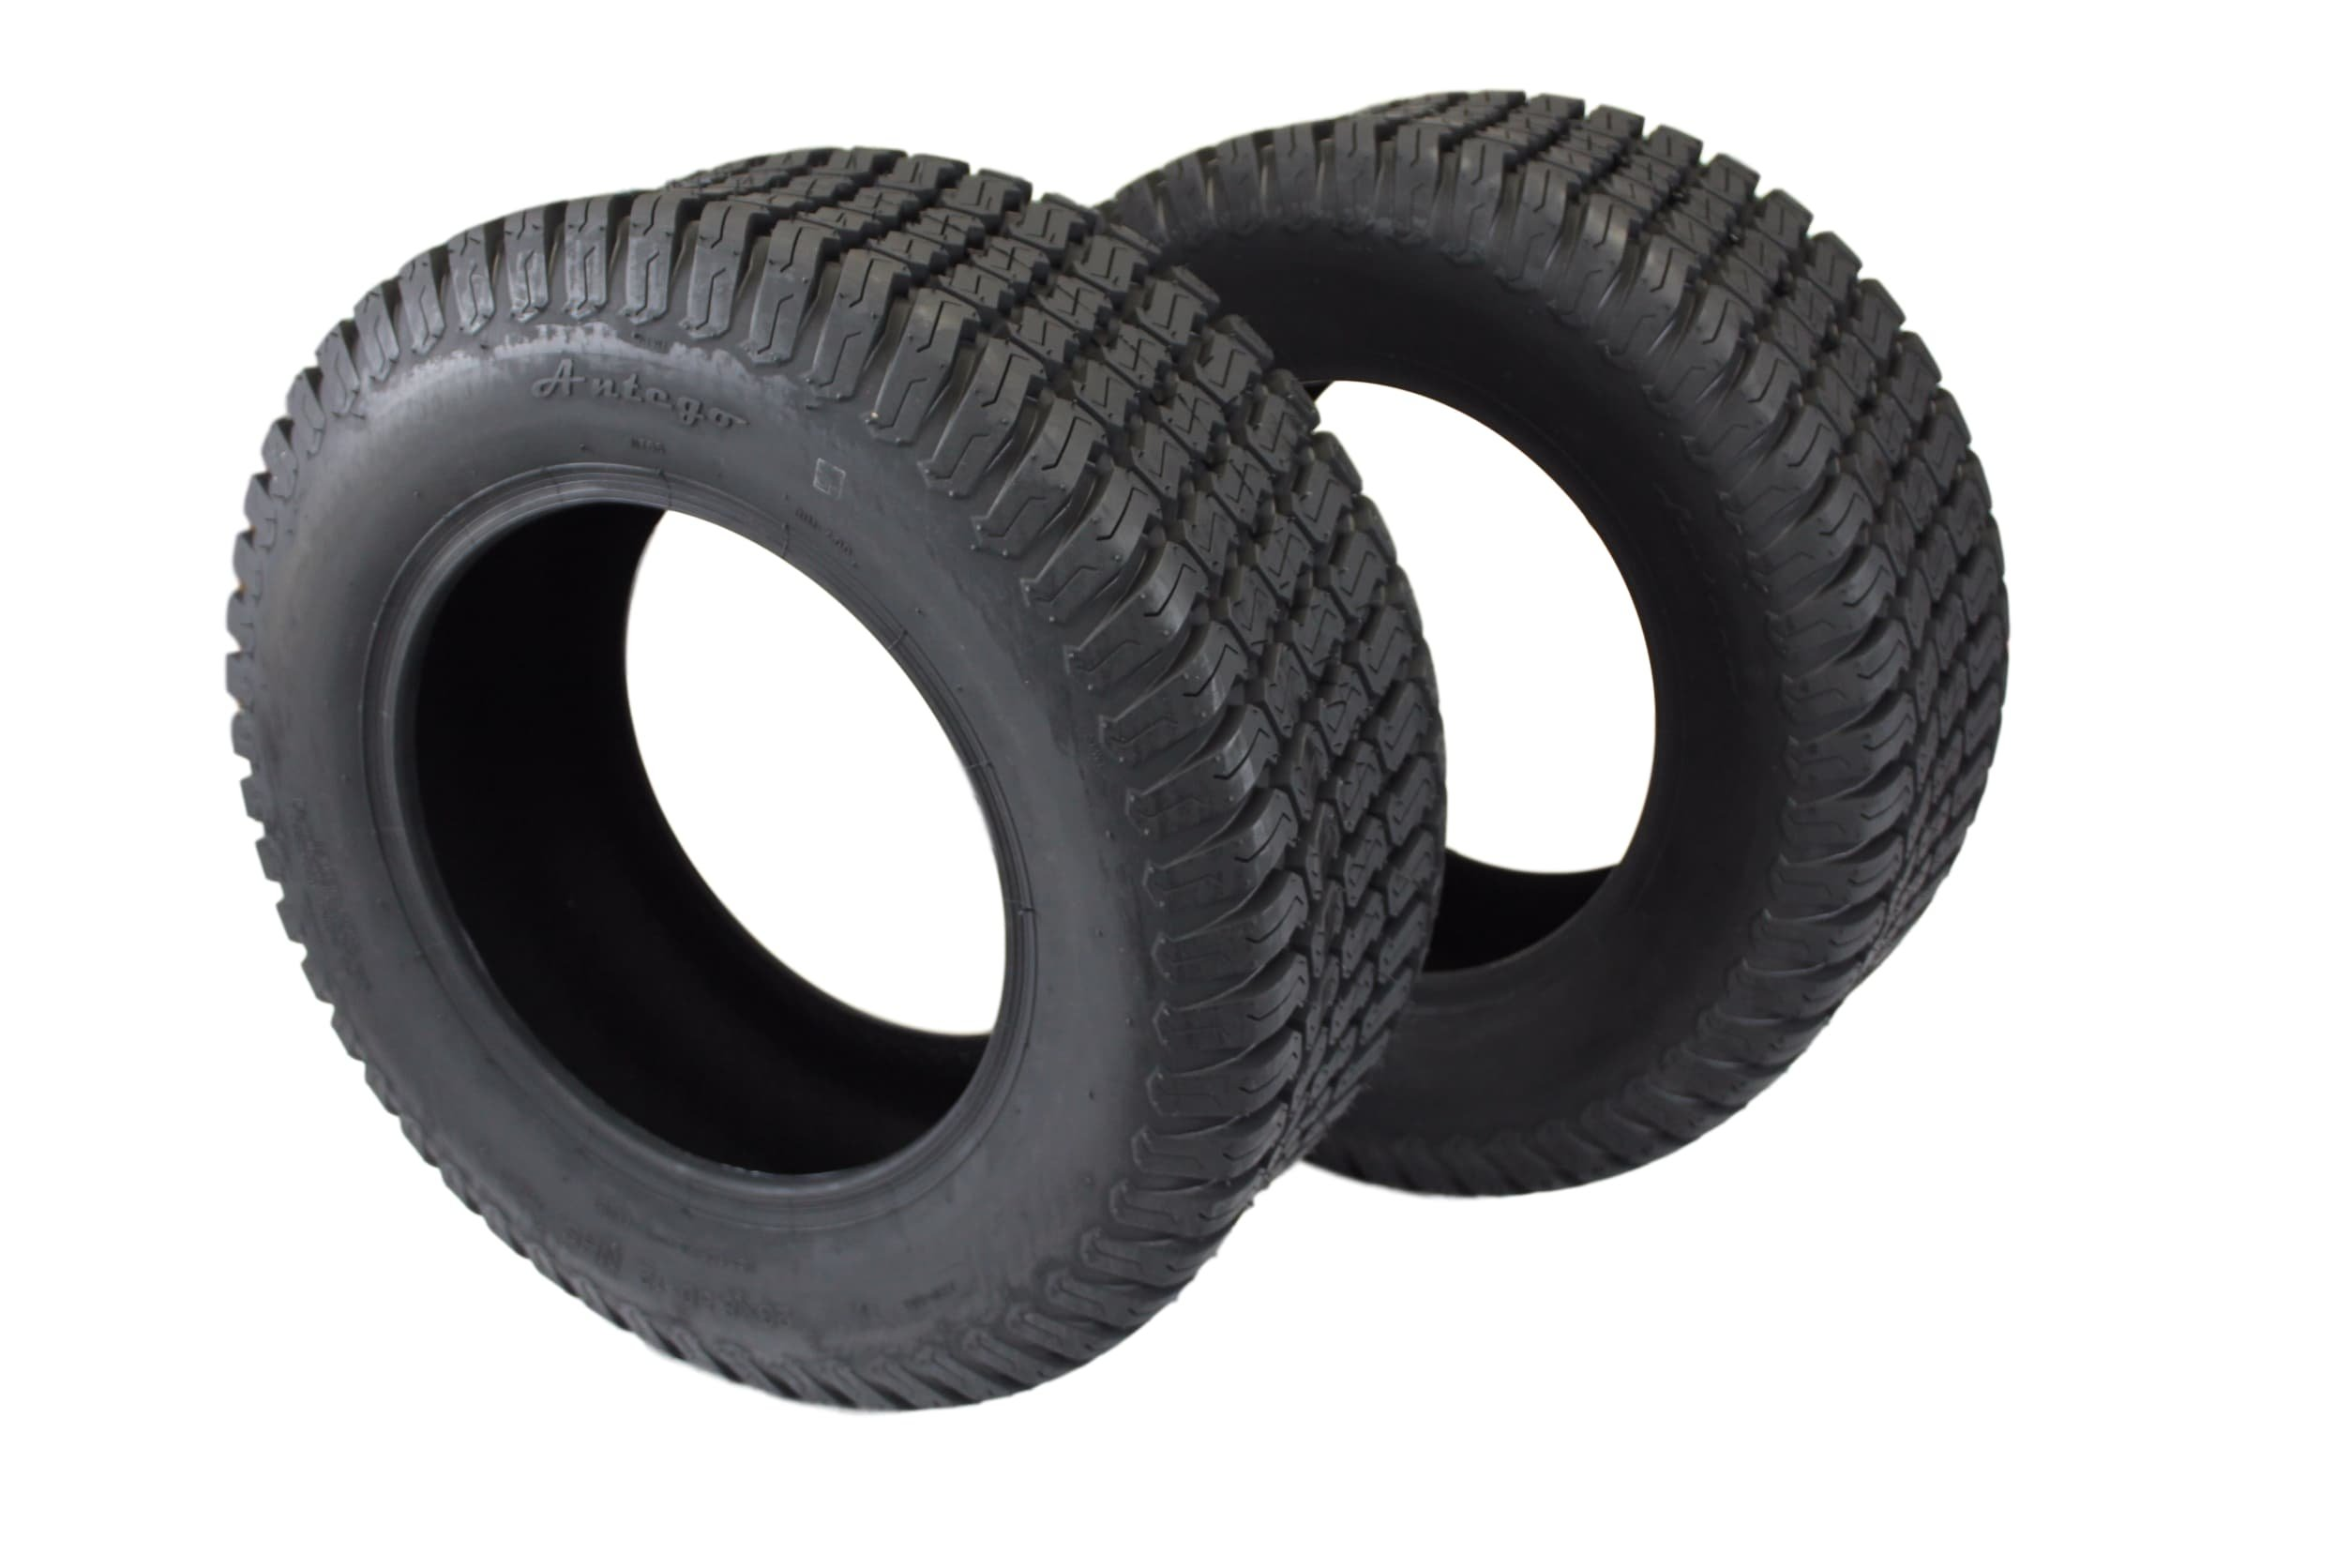 Set of Two 23x8.50-12 4 Ply Turf Tires for Lawn & Garden Mower 23x8.5-12